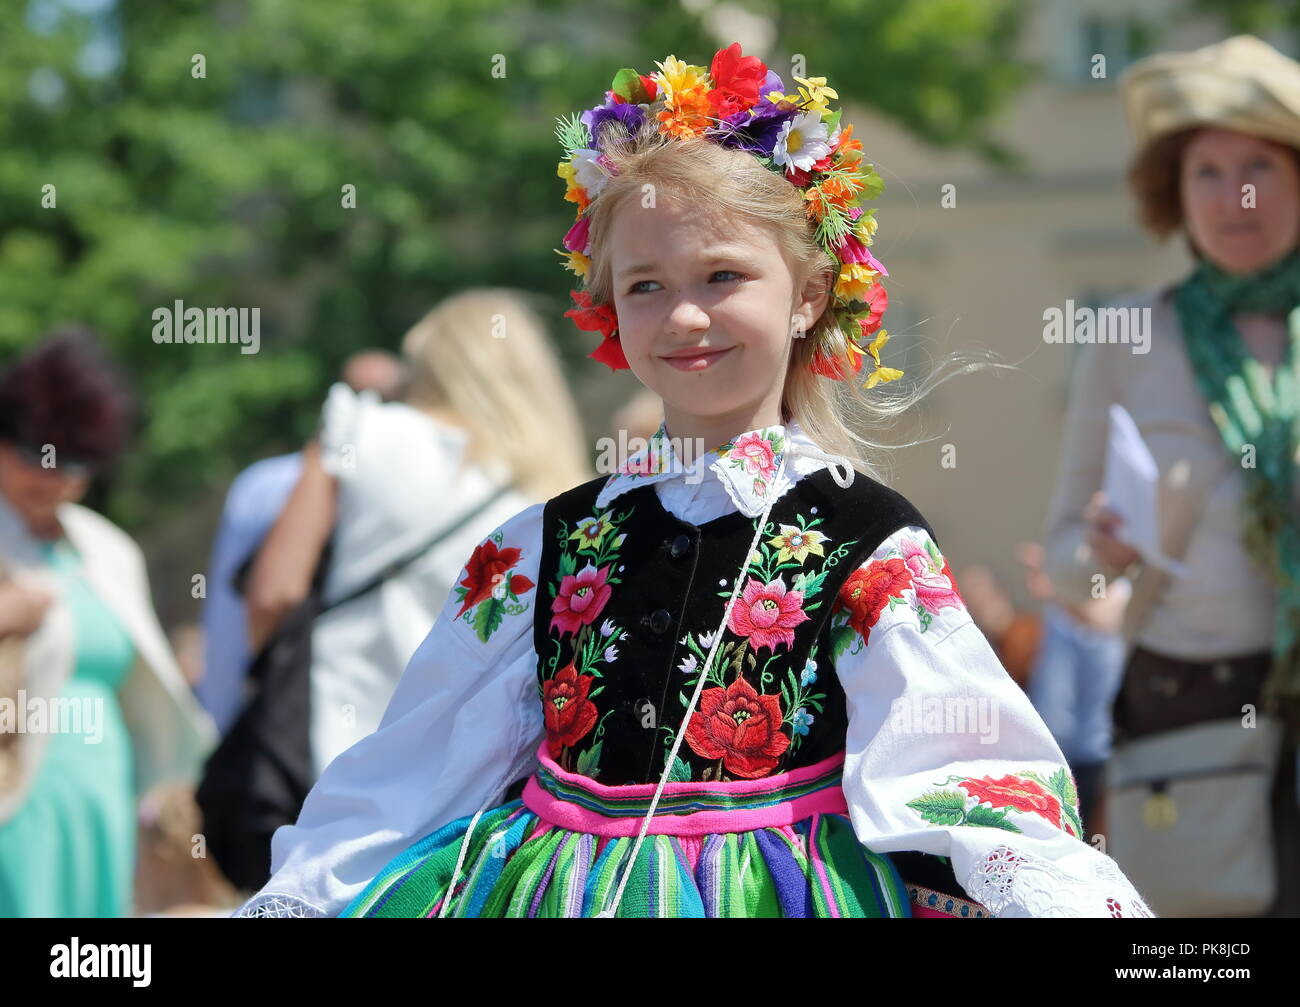 Young blon-haired Slavic girl from Lowicz reggion, Poland, dressed in traditional colorful folk costumes during annual Corpsu Christi procession. - Stock Image